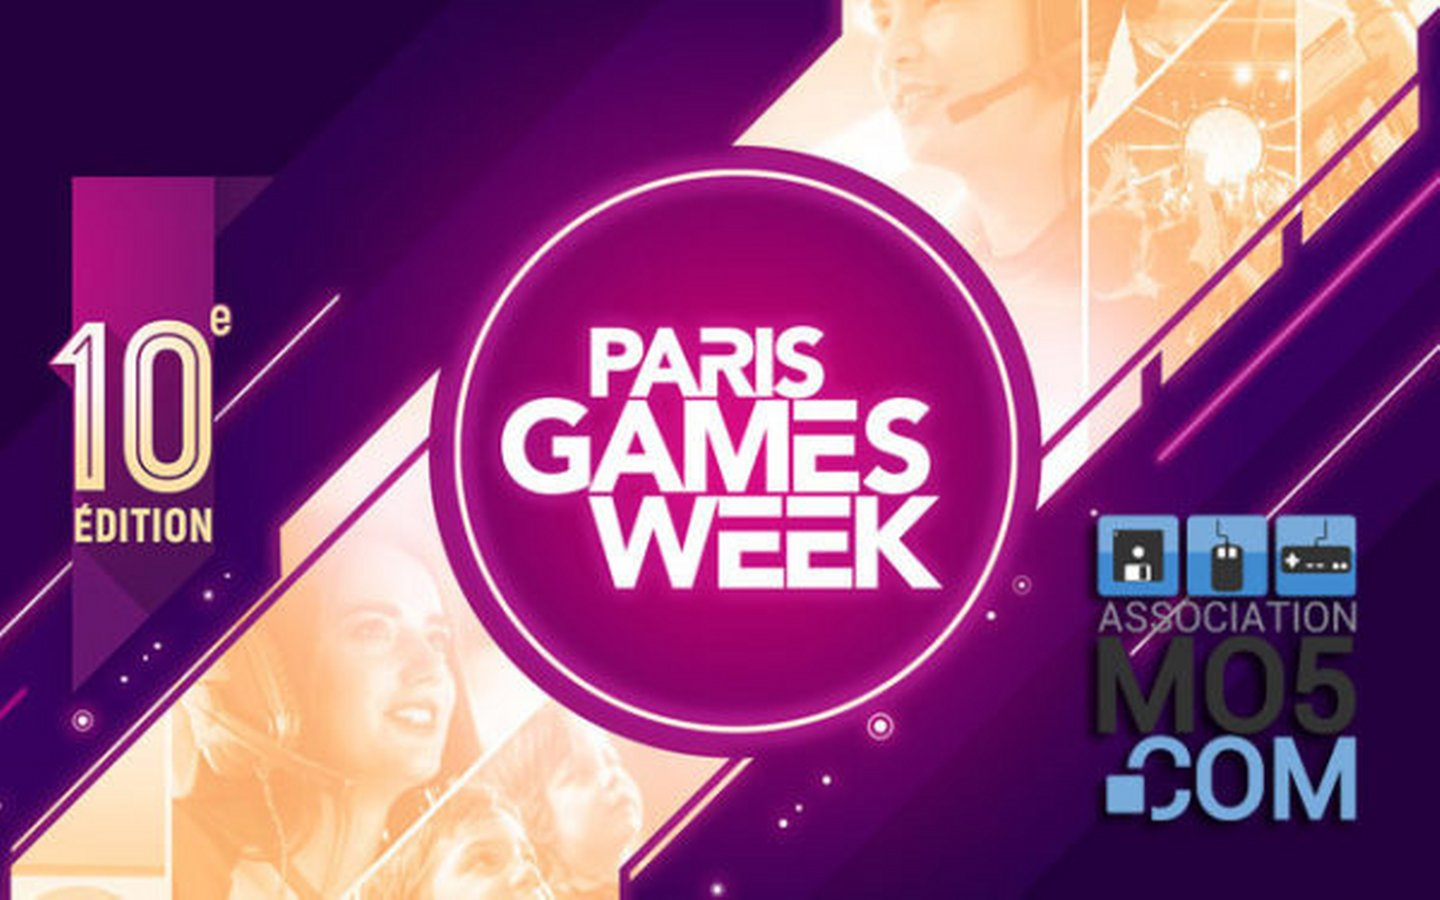 paris games week 2019 600x375